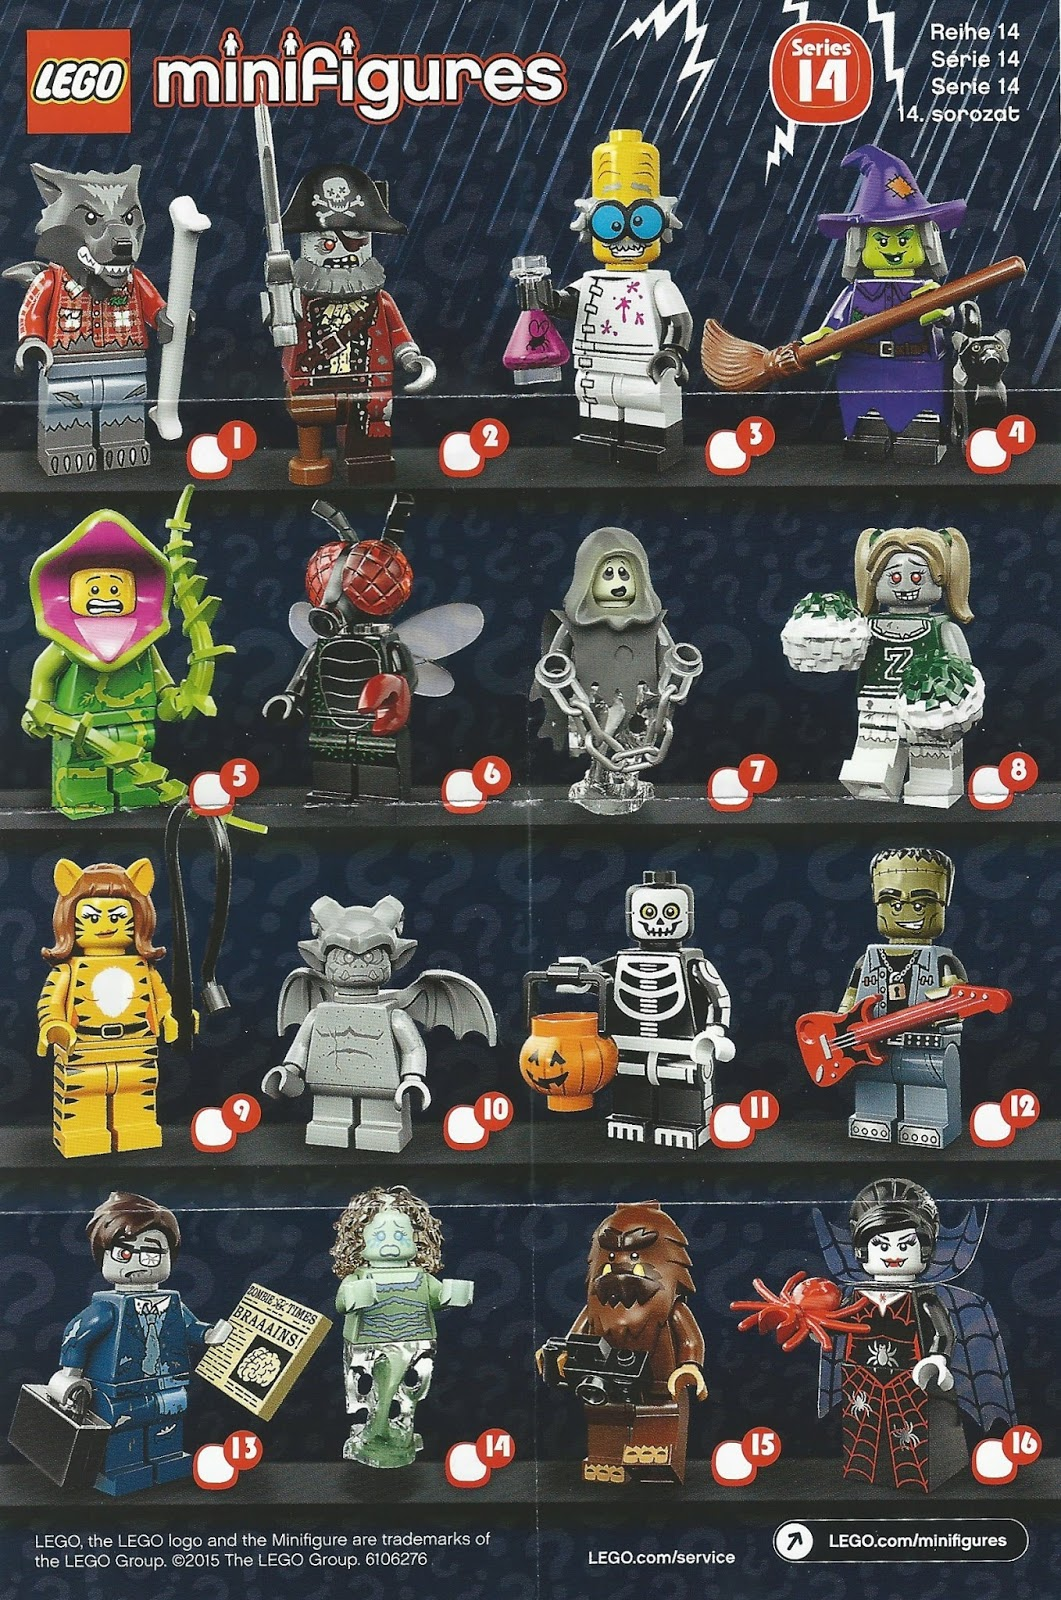 The Minifigure Collector Lego Minifigures Series 14